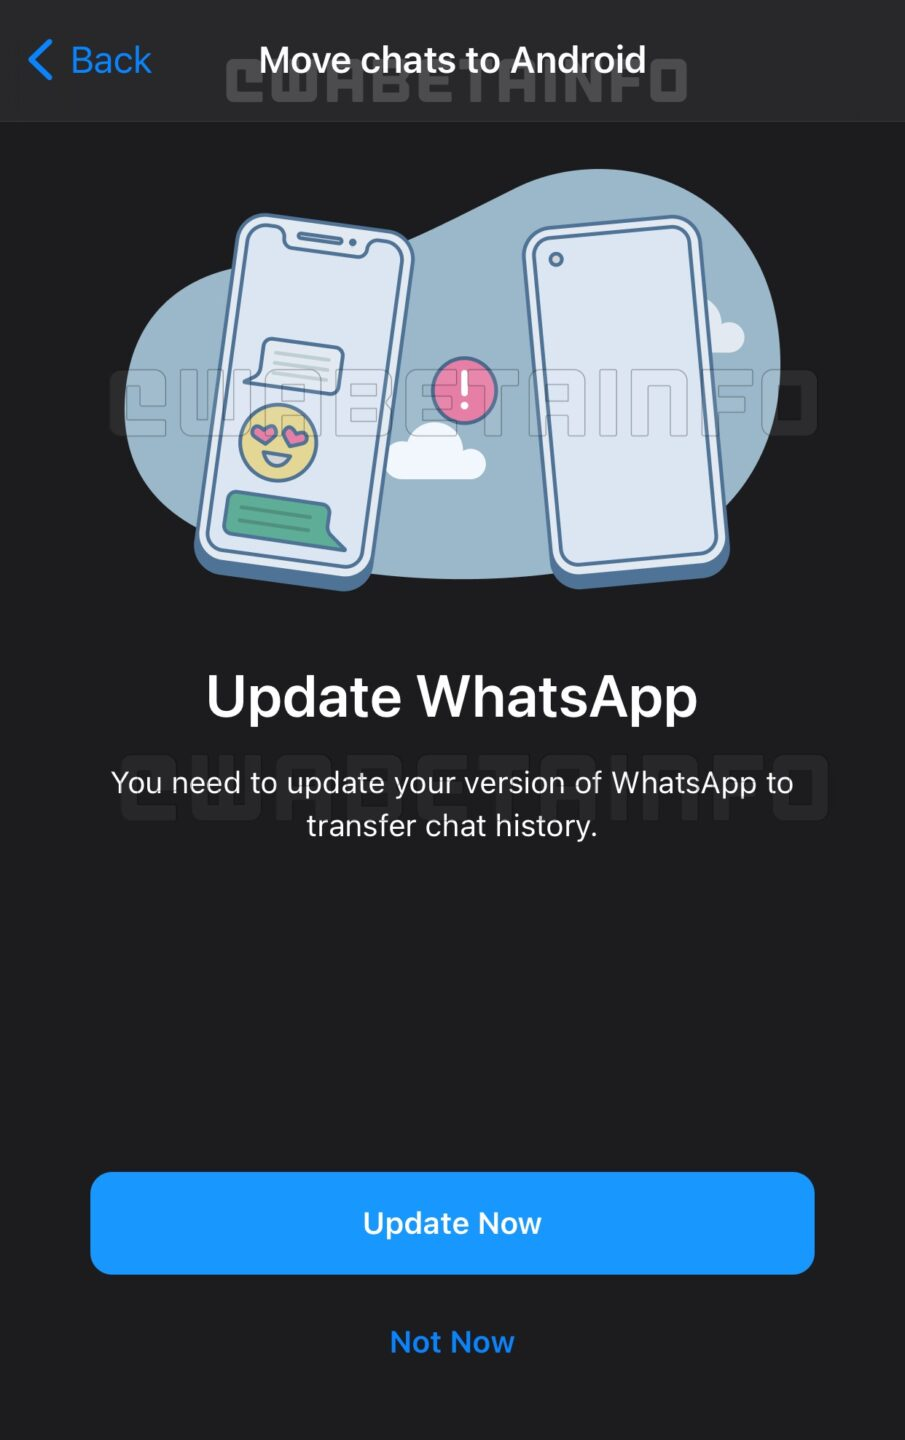 whatsapp chat migration android ios